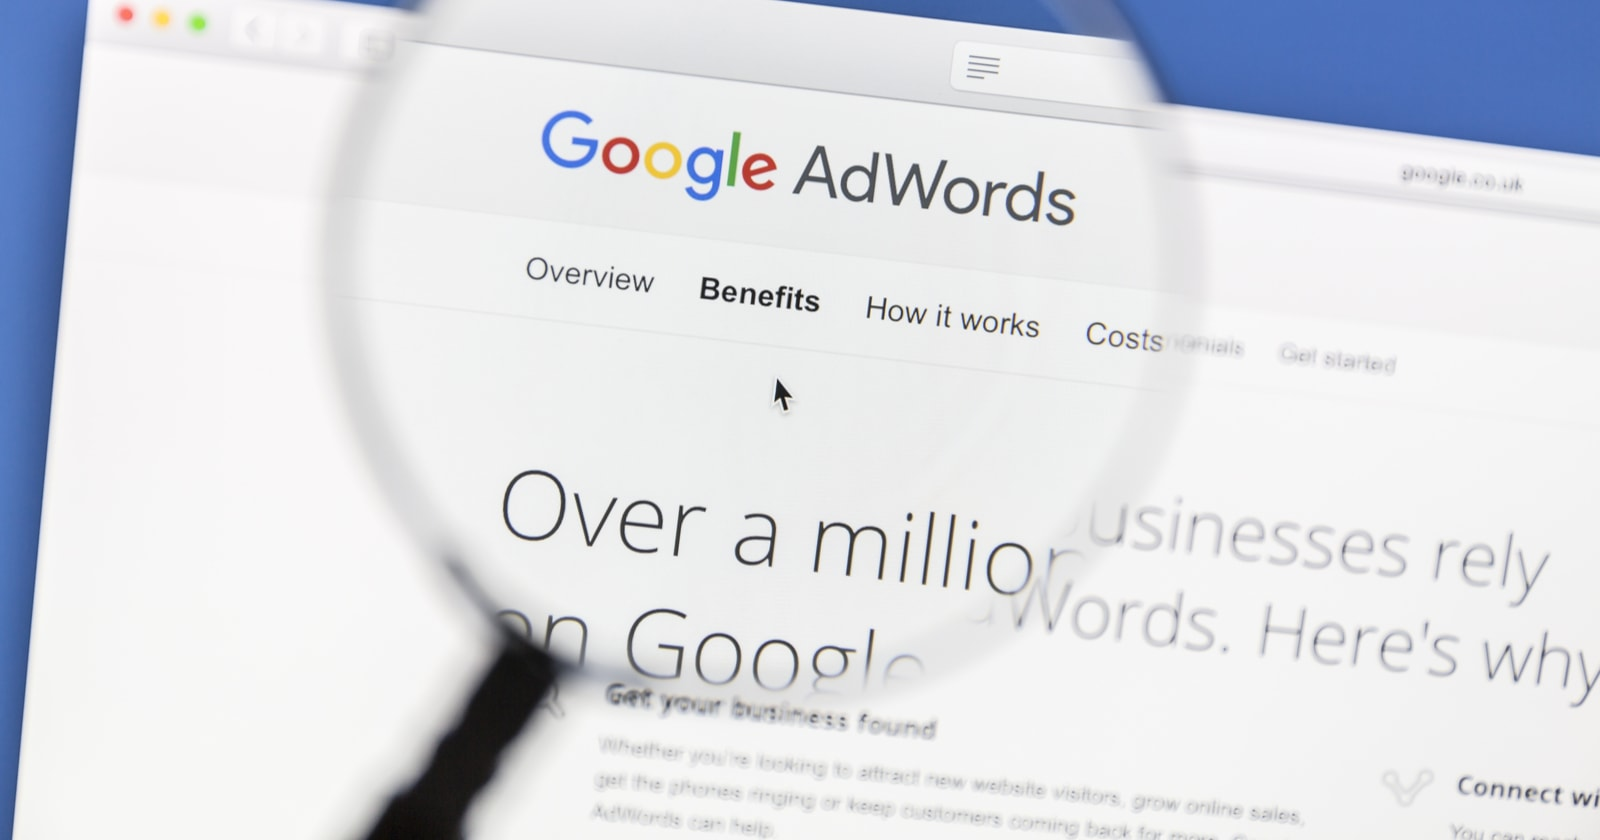 New AdWords Experience Rolling Out by End of the Year by @MattGSouthern